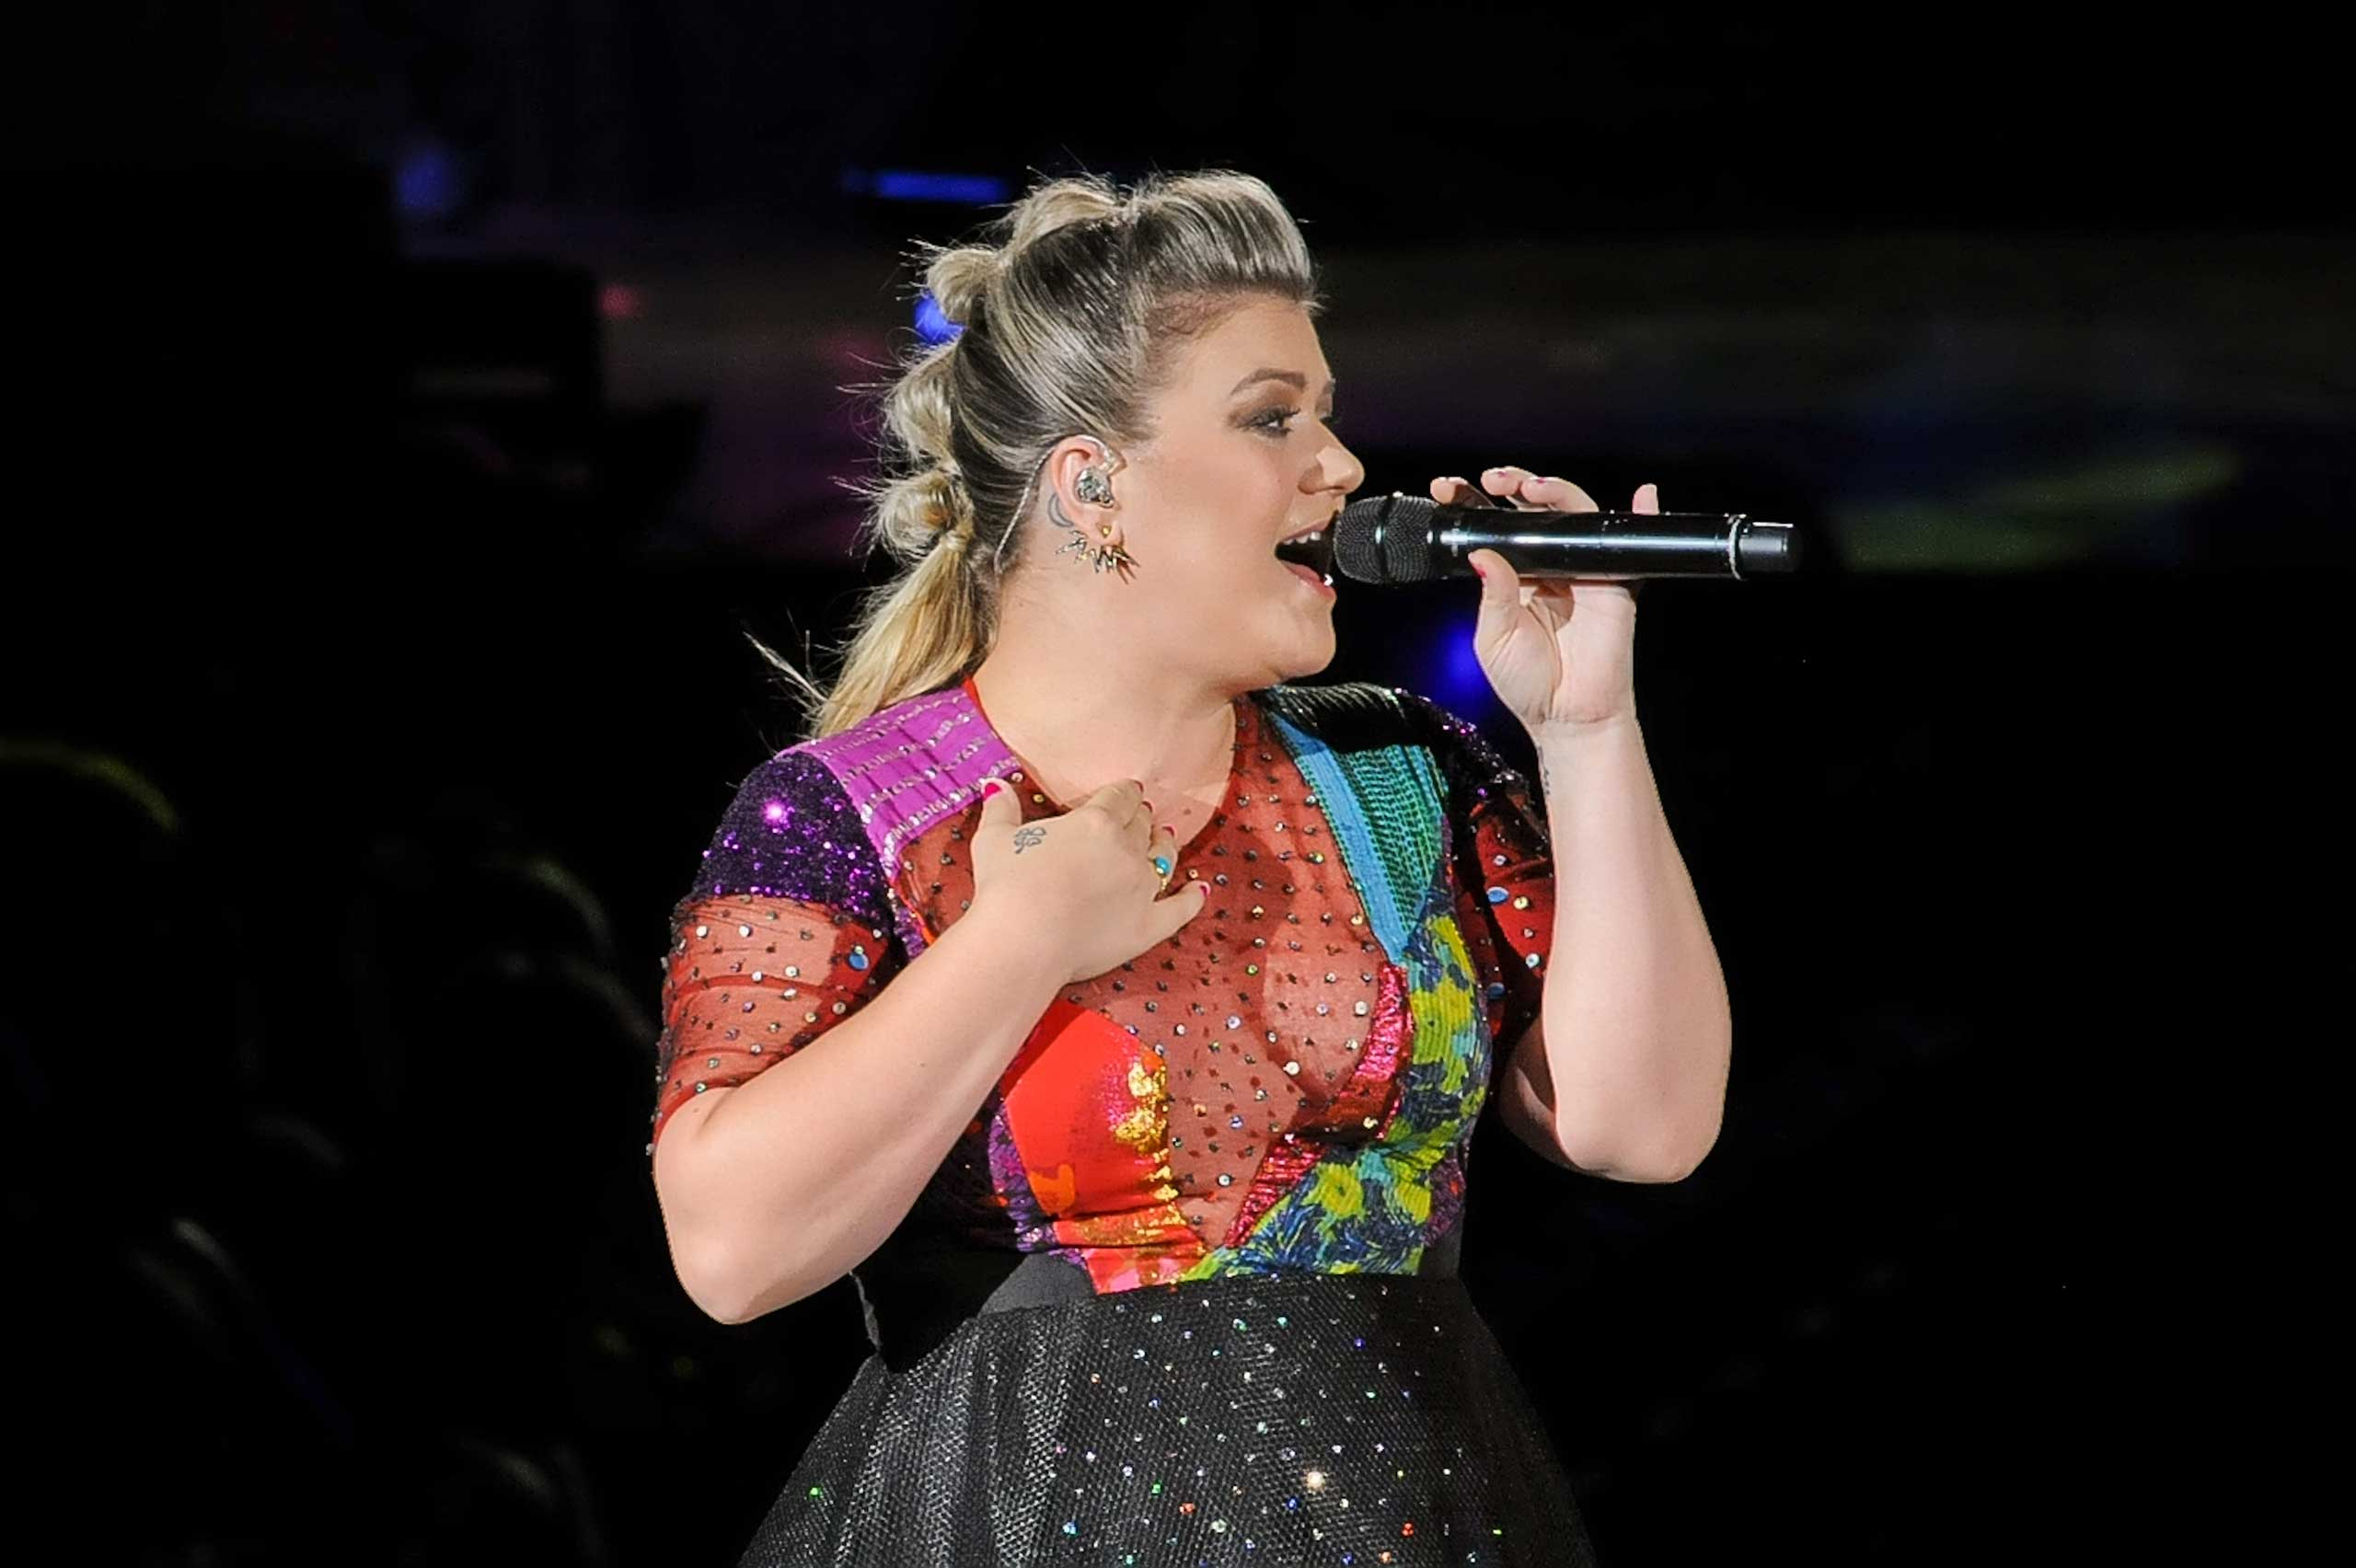 Kelly Clarkson performs at the Austin360 Amphiteater during her Piece by Piece Tour in Austin on Aug 29, 2015.